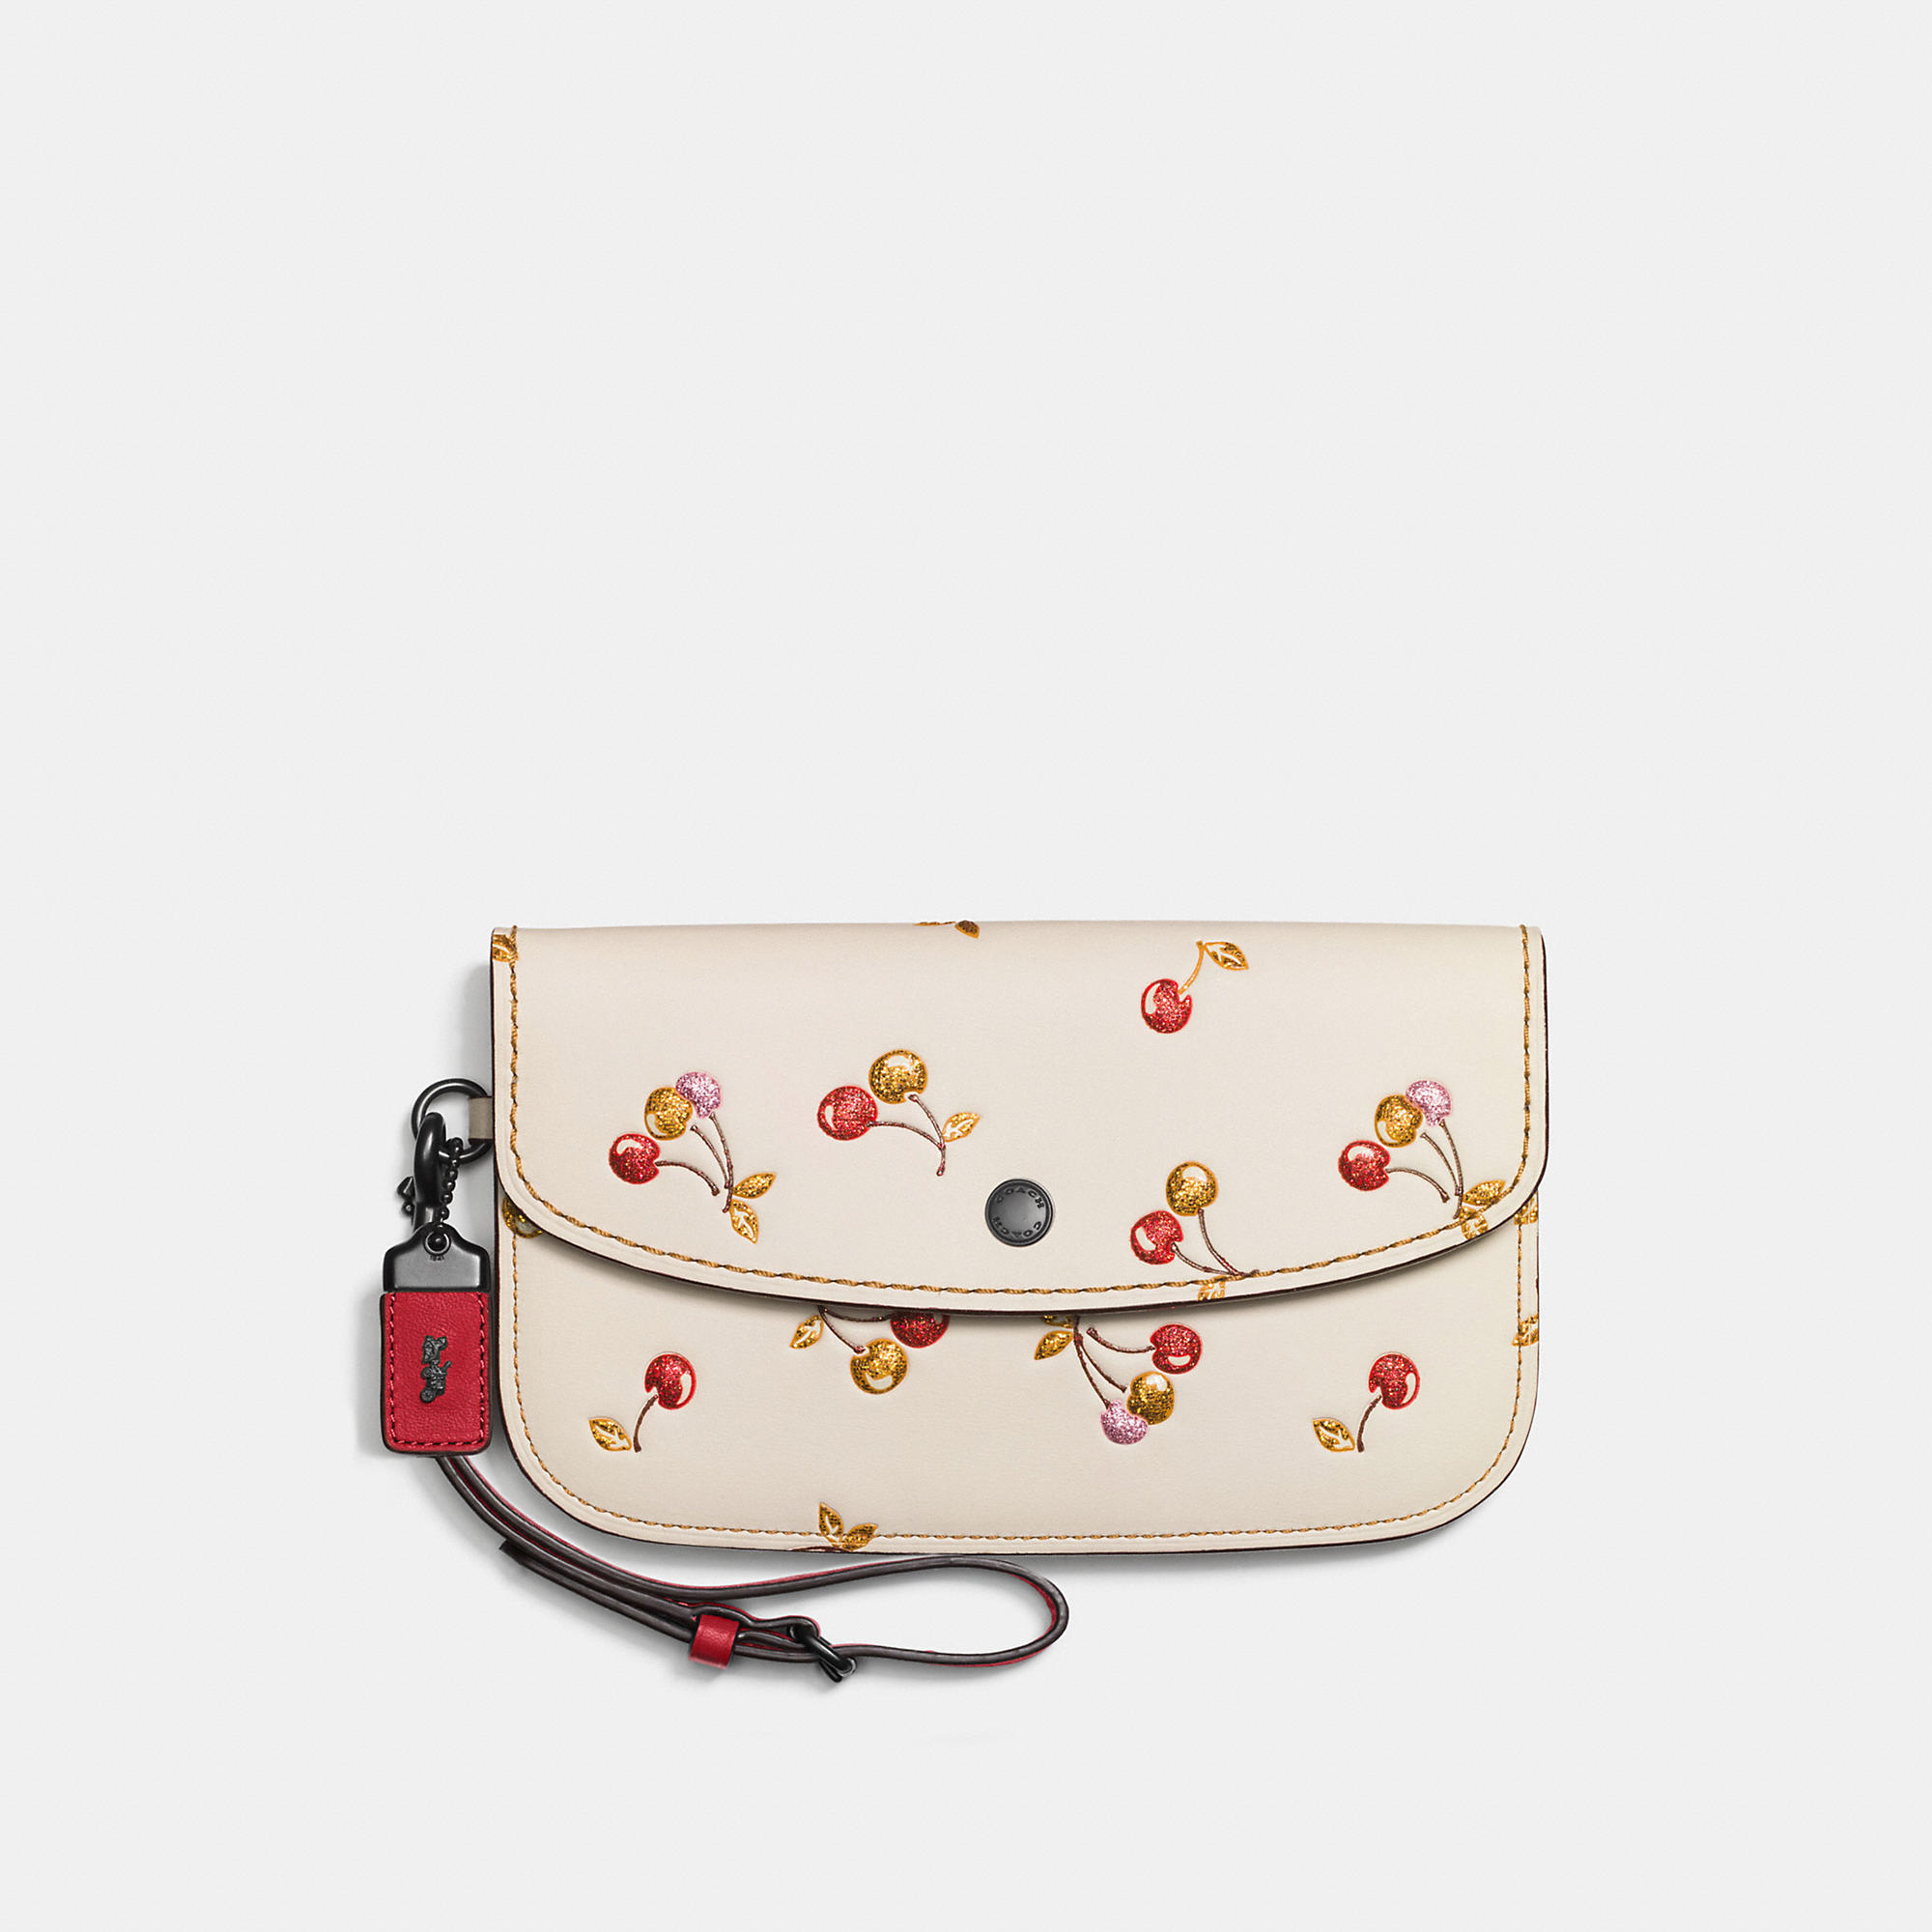 Coach Clutch In Glovetanned Leather With Cherry Print